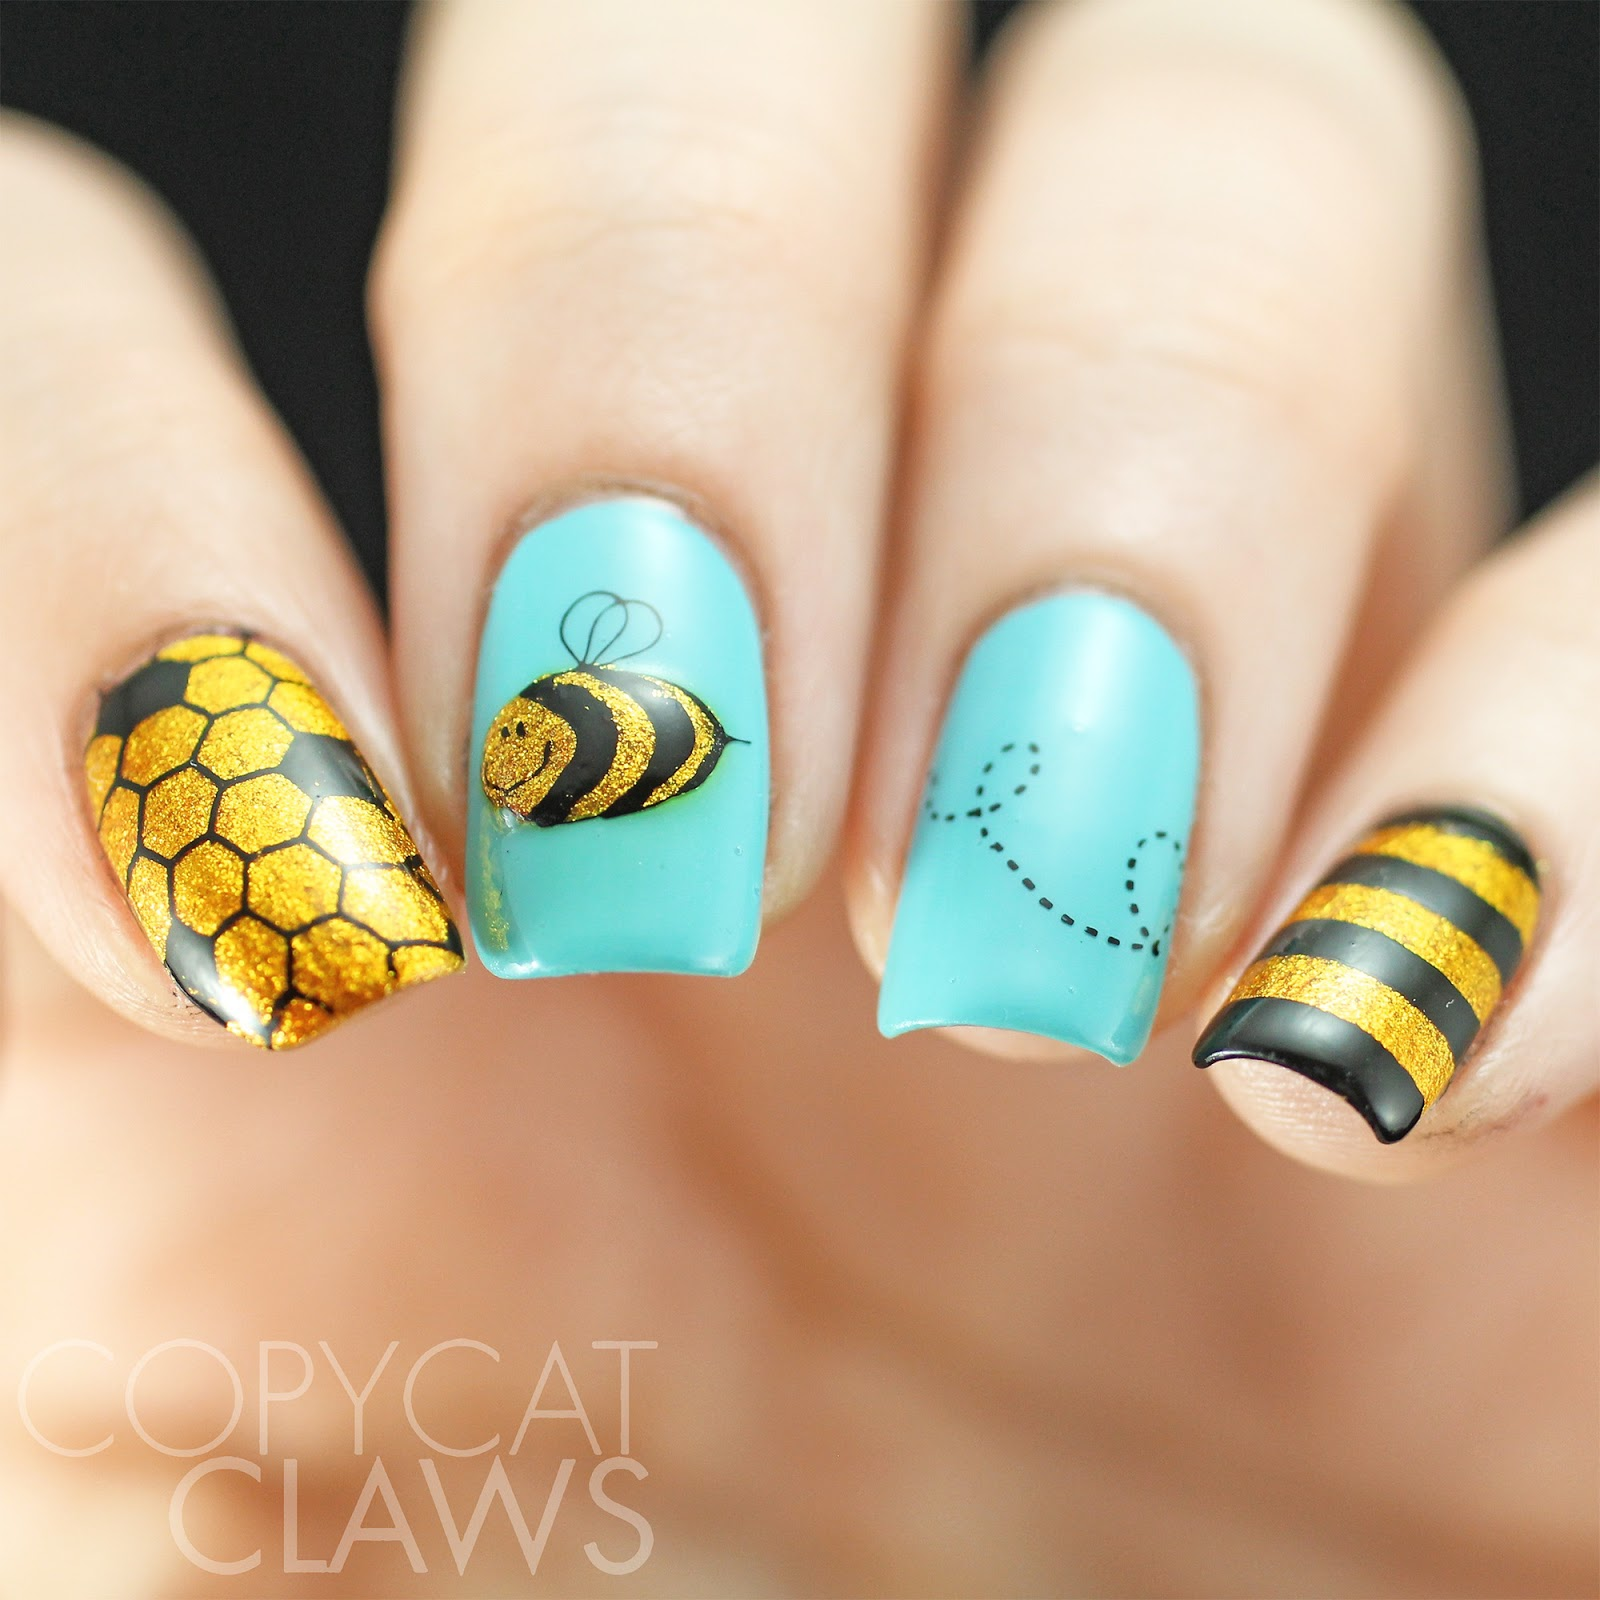 Copycat Claws The Digit Al Dozen Does New Improved40 Great Nail